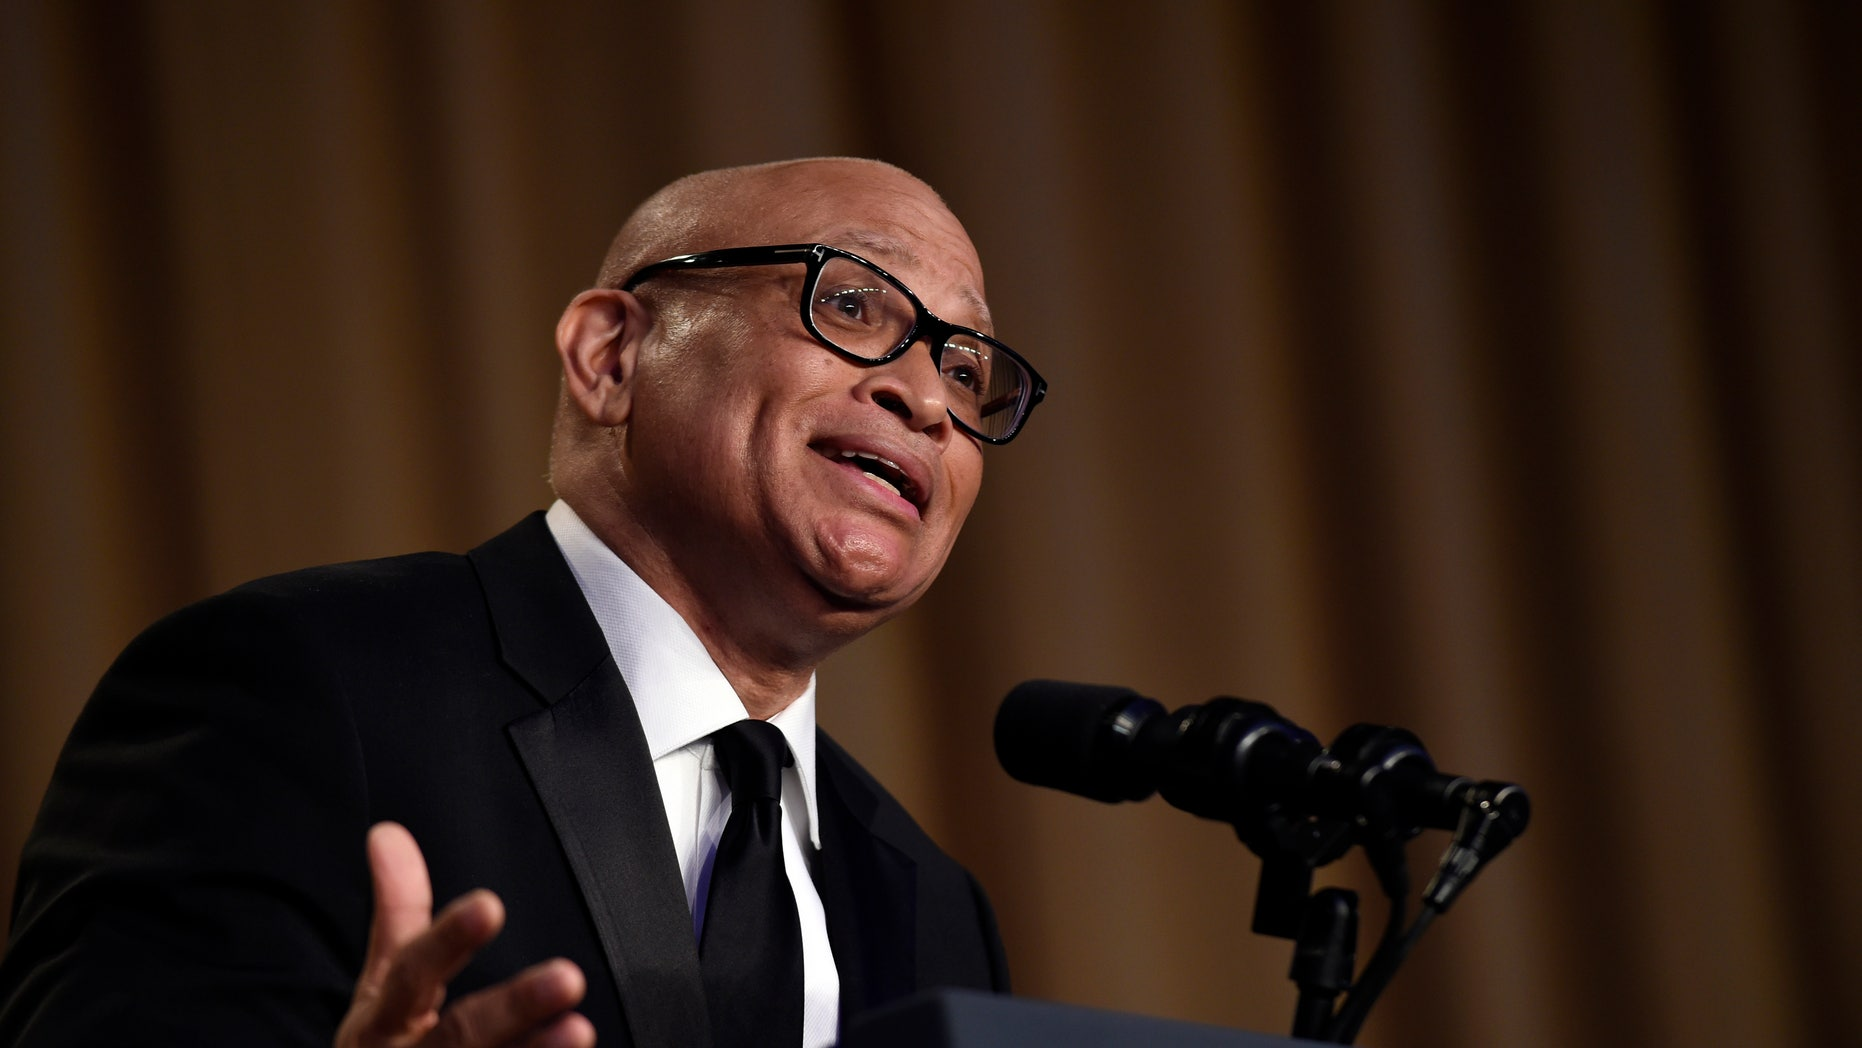 In this April 30, 2016 file photo, Larry Wilmore speaks at the annual White House Correspondents' Association dinner in Washington.